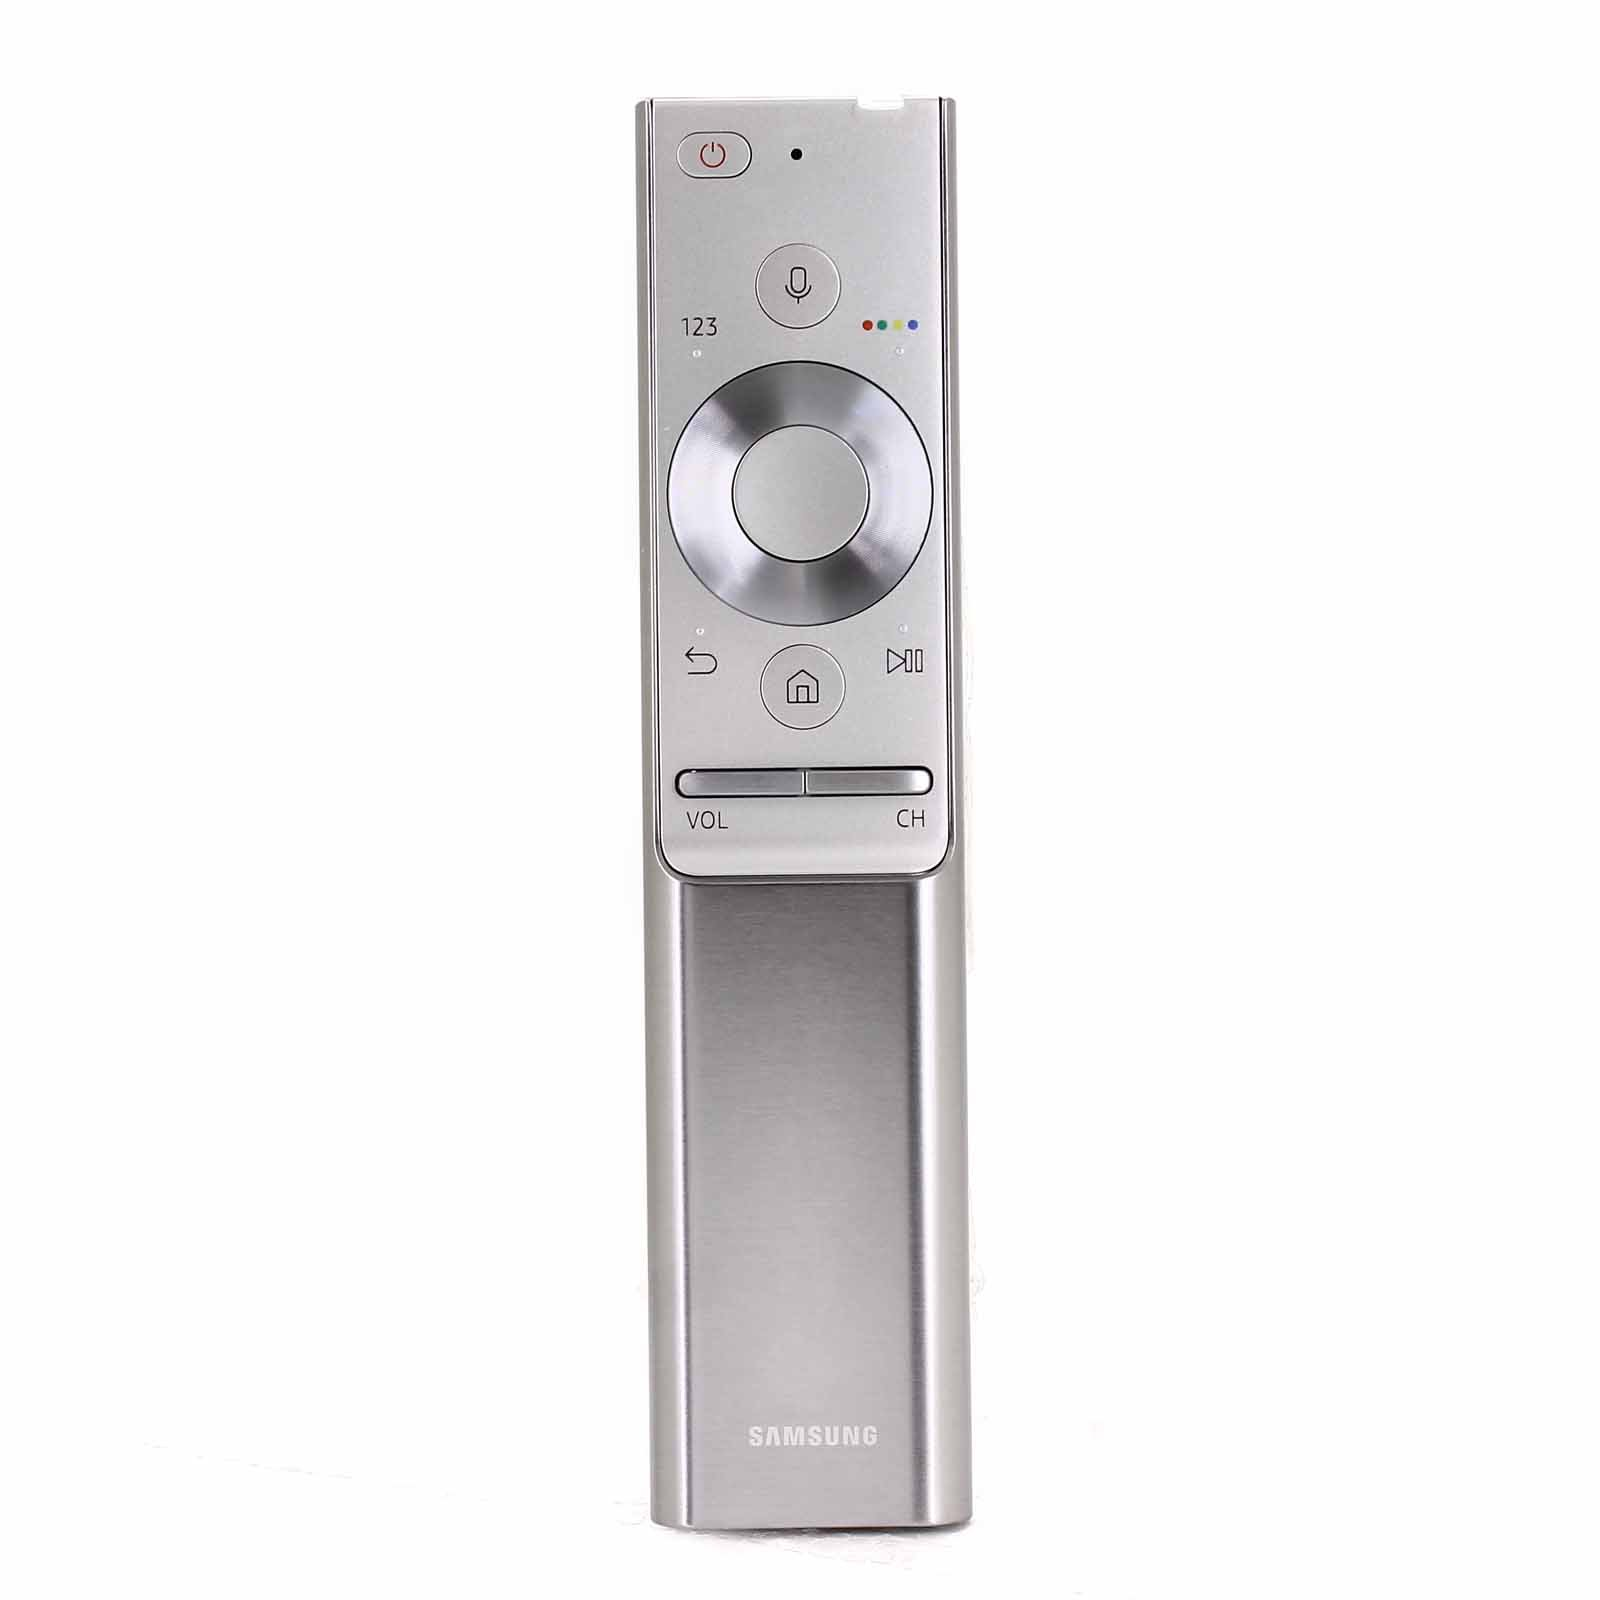 New Replacement Remote control for Samsung BN59-01242A SMART REMOTE KS SERIES